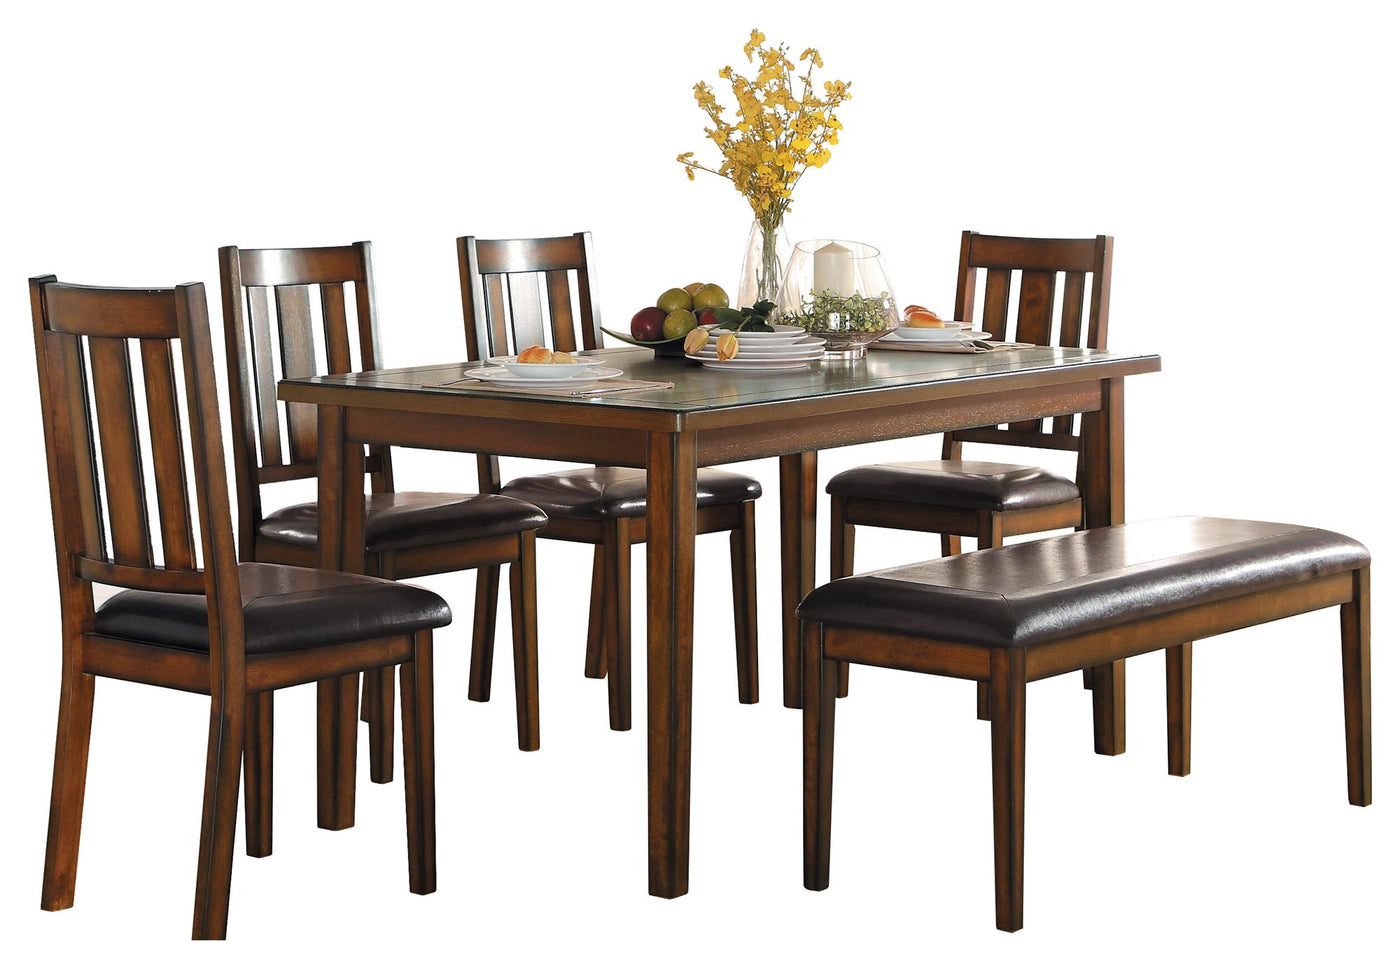 Homelegance Delmar 6pc Dining Set Dining Table Four Side Chair Bench